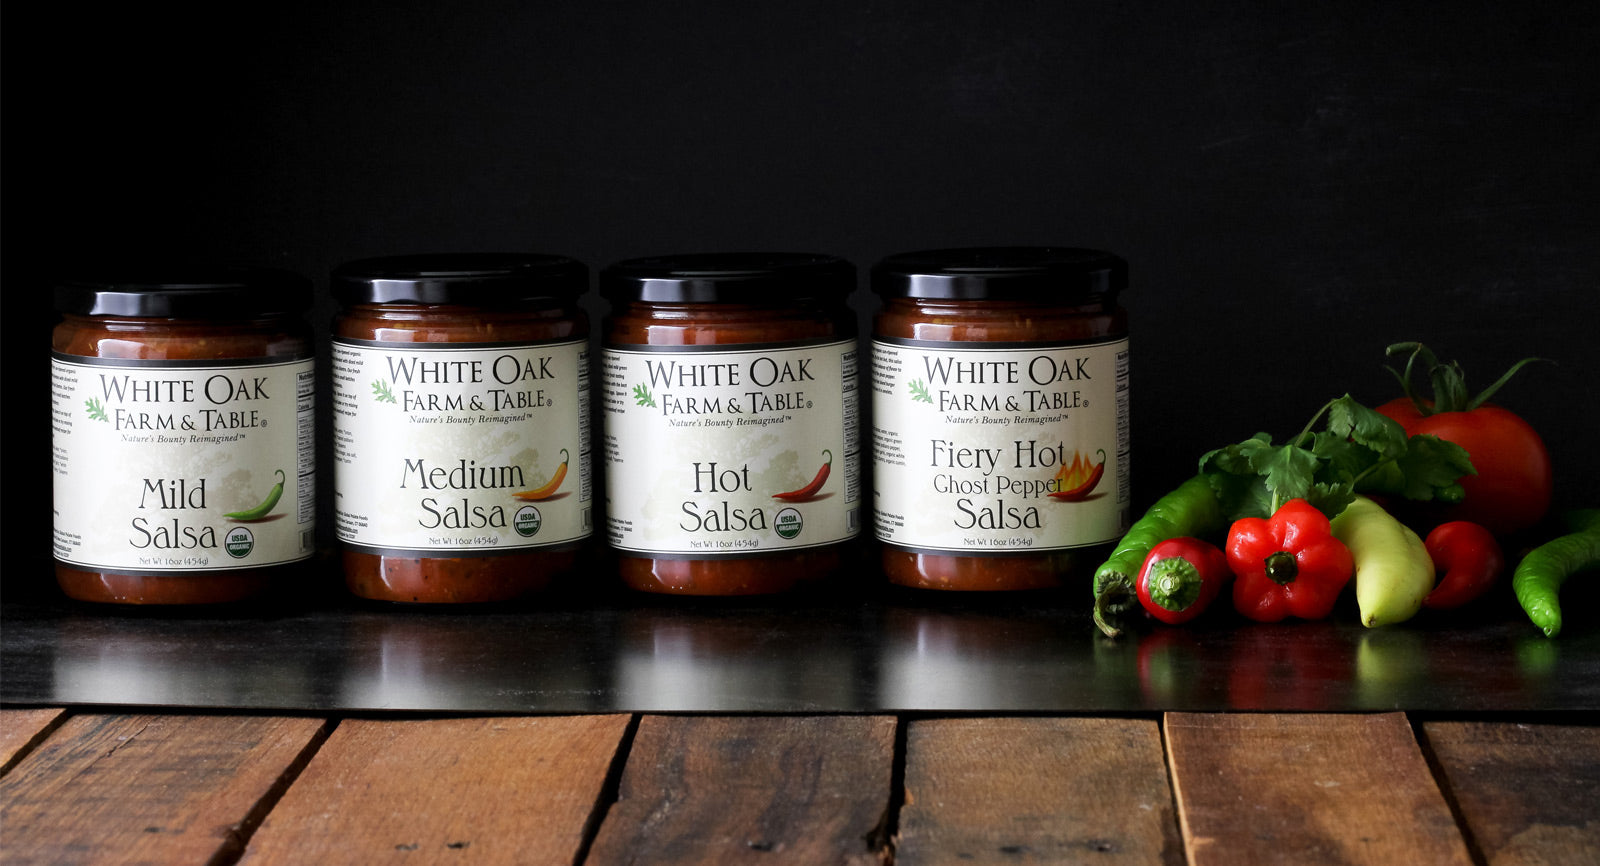 White Oak Farm and Table Salsas